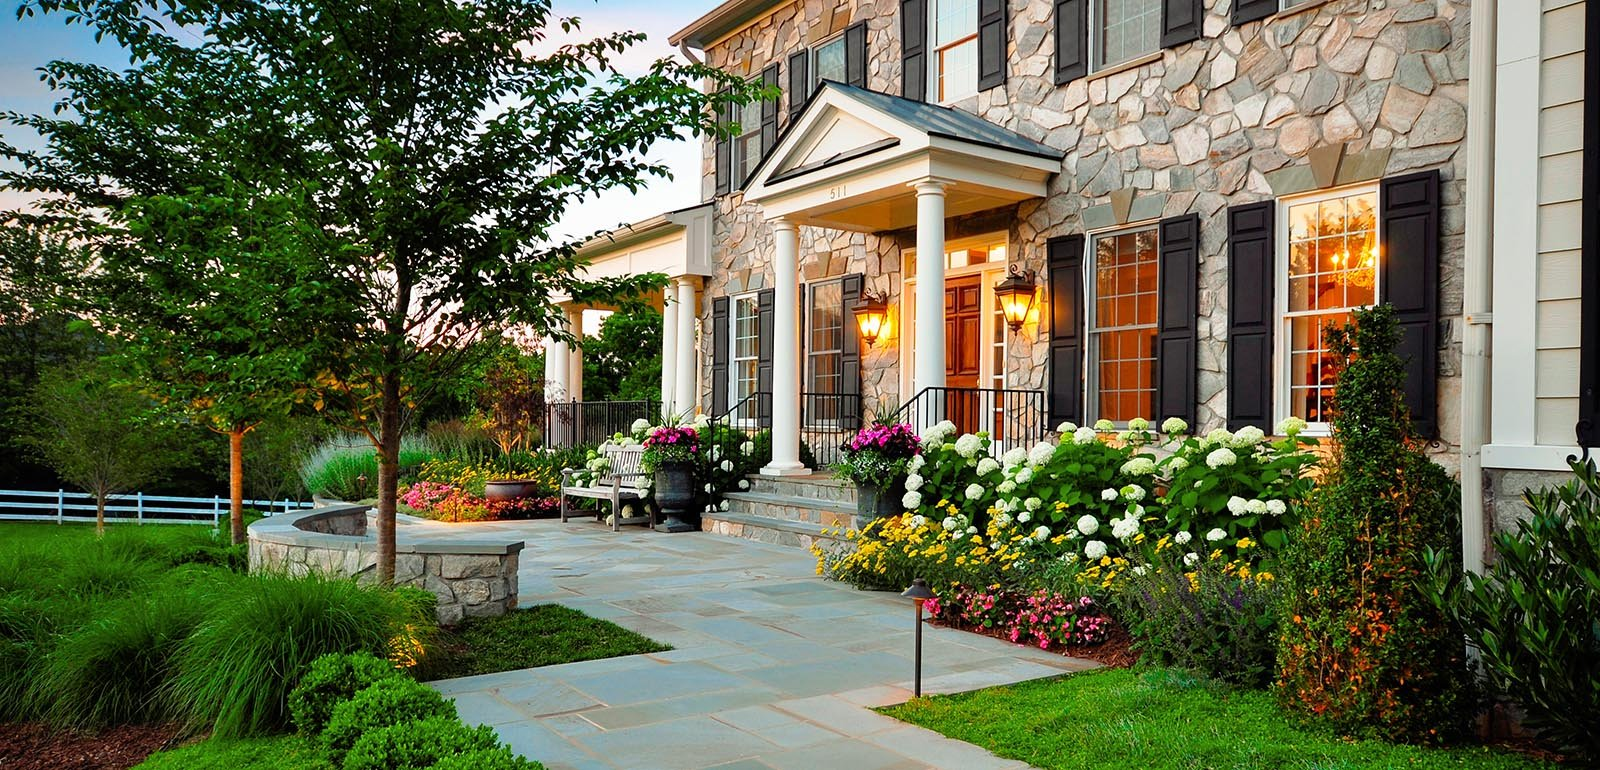 20 Simple But Effective Front Yard Landscaping Ideas on Simple Backyard Landscaping Ideas id=76111